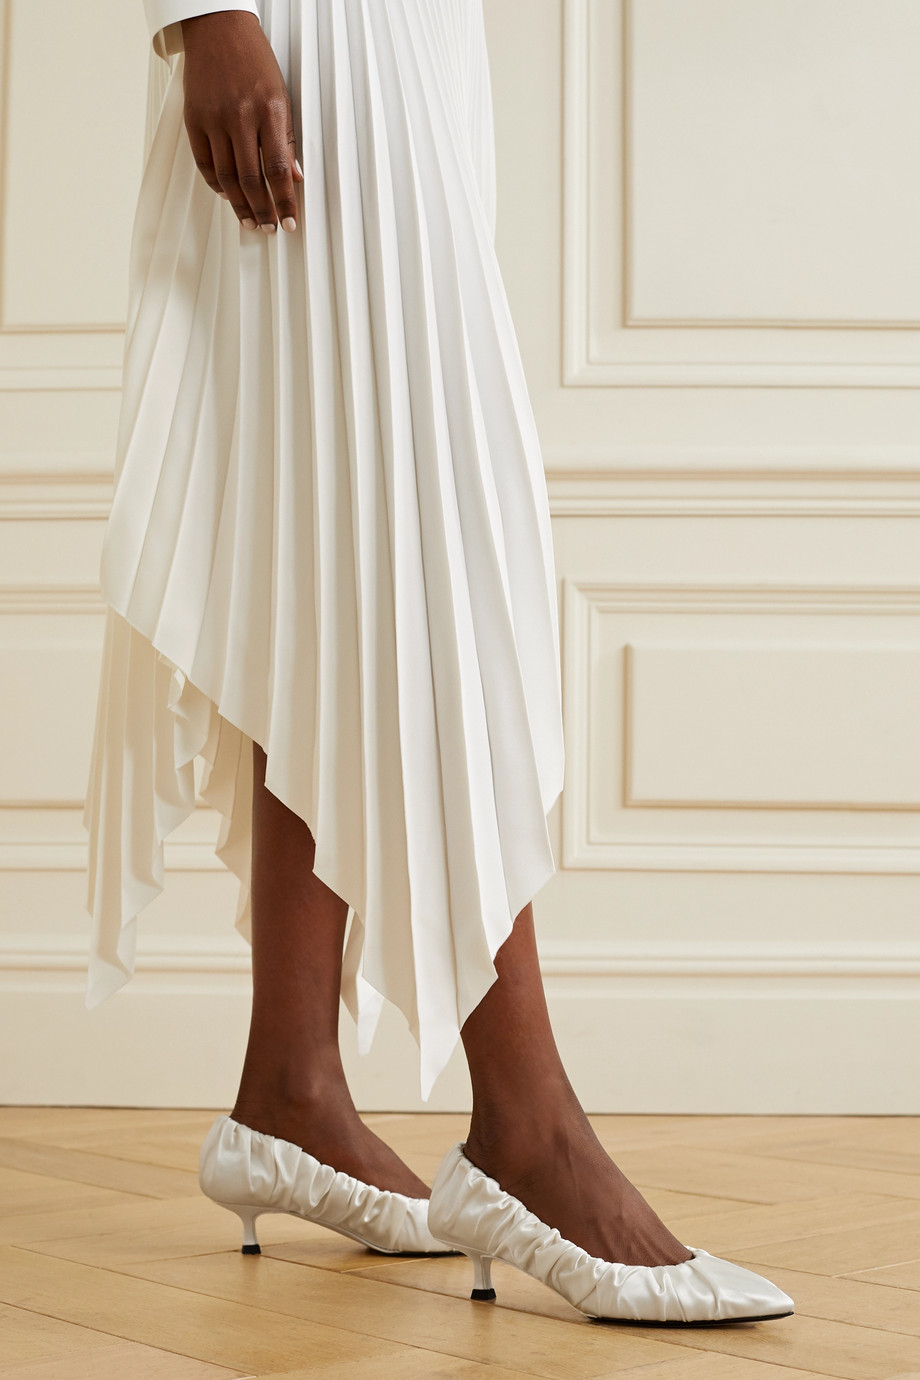 Khaite Palermo gathered satin pumps